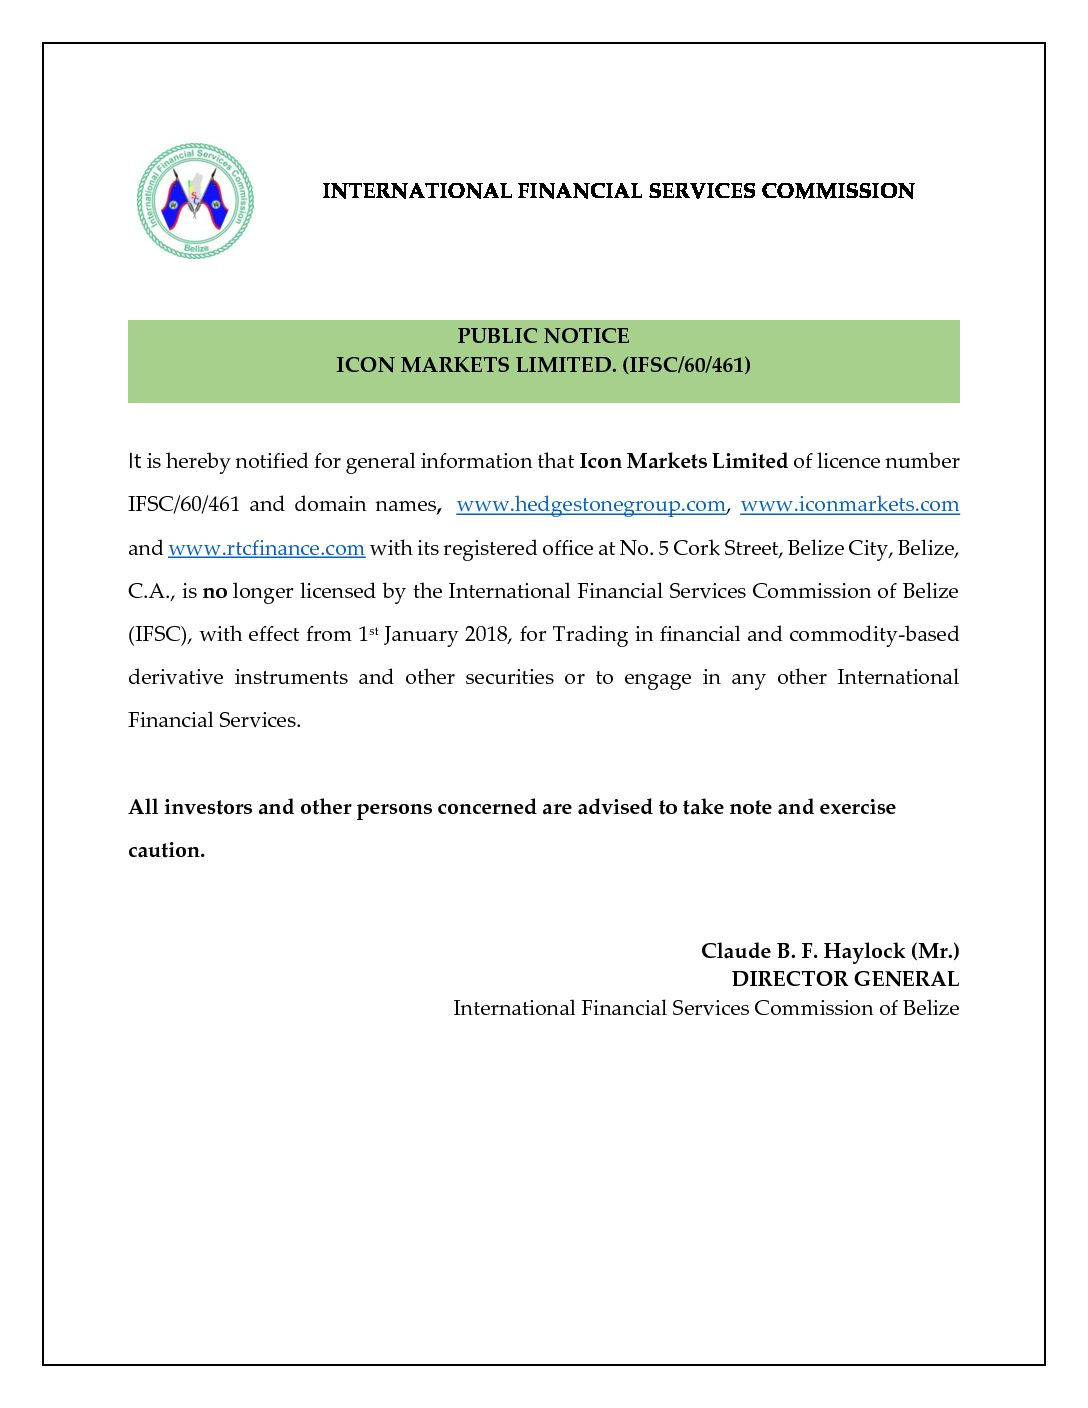 PUBLIC NOTICE – ICON MARKETS LIMITED. (IFSC/60/461)